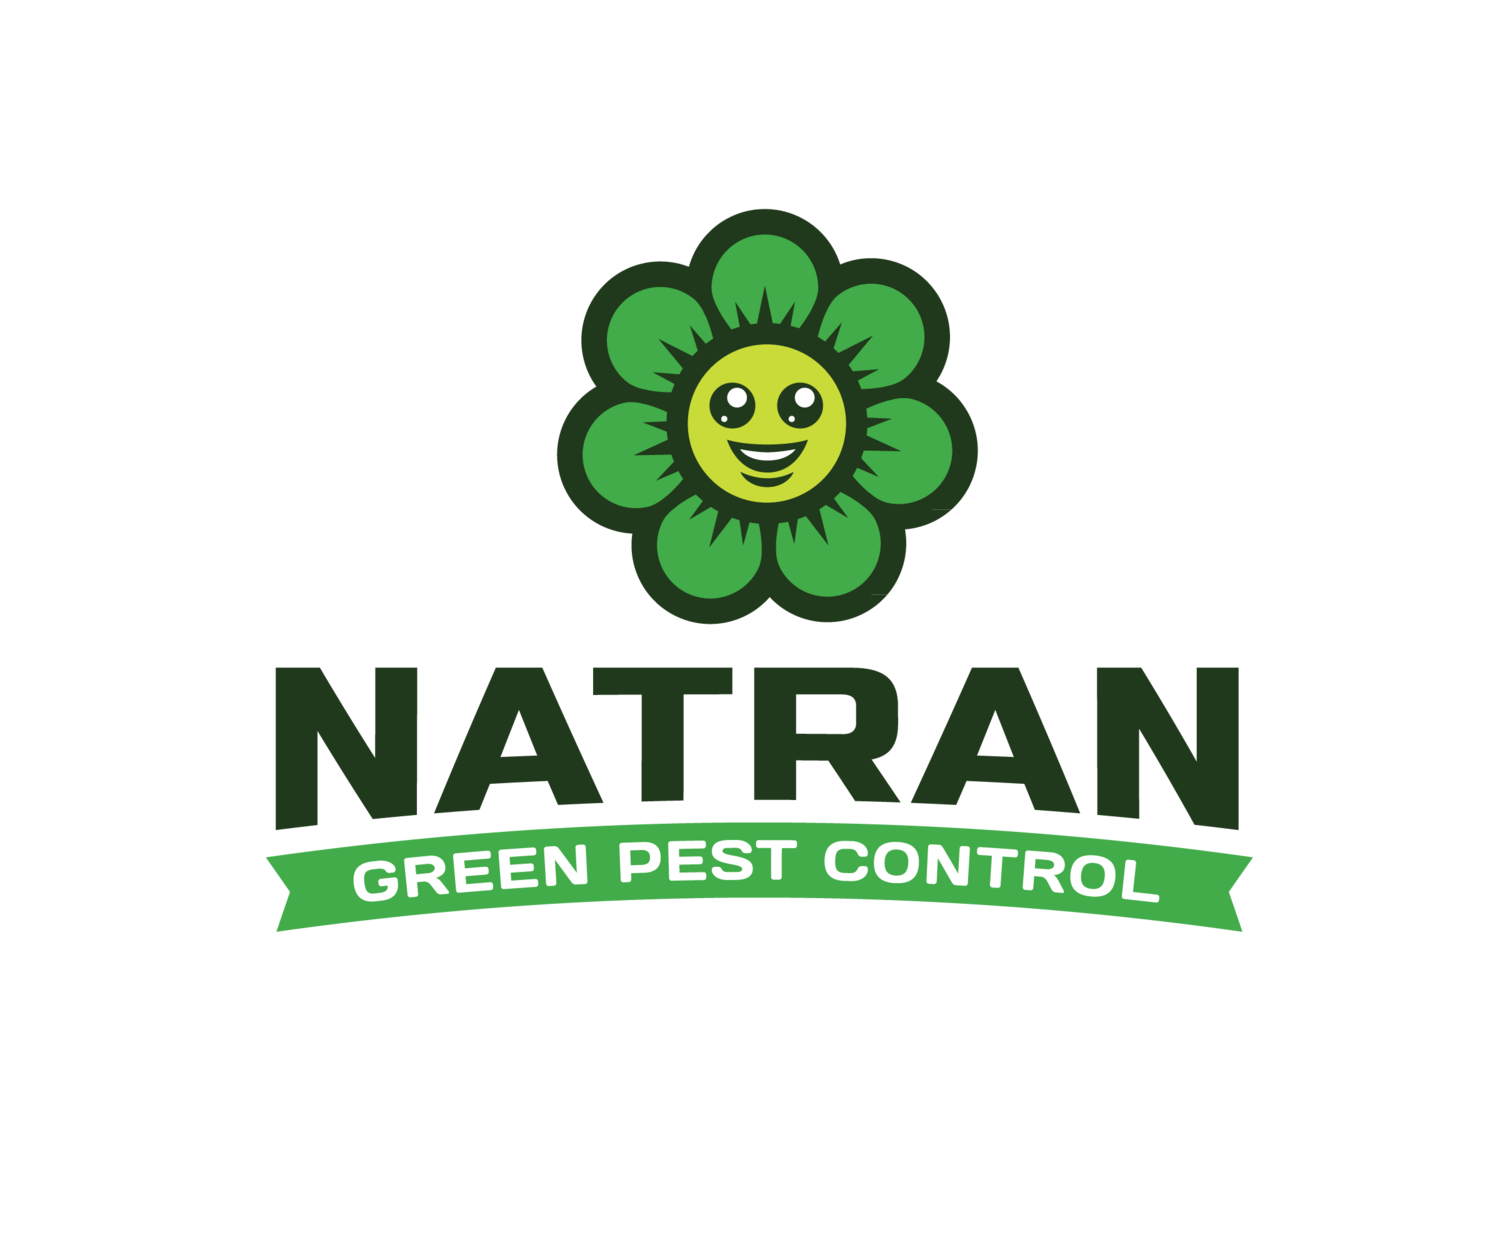 Natran Green Pest Control - People, Planet, Pet-Friendly Pest Control in Houston & Austin, Texas